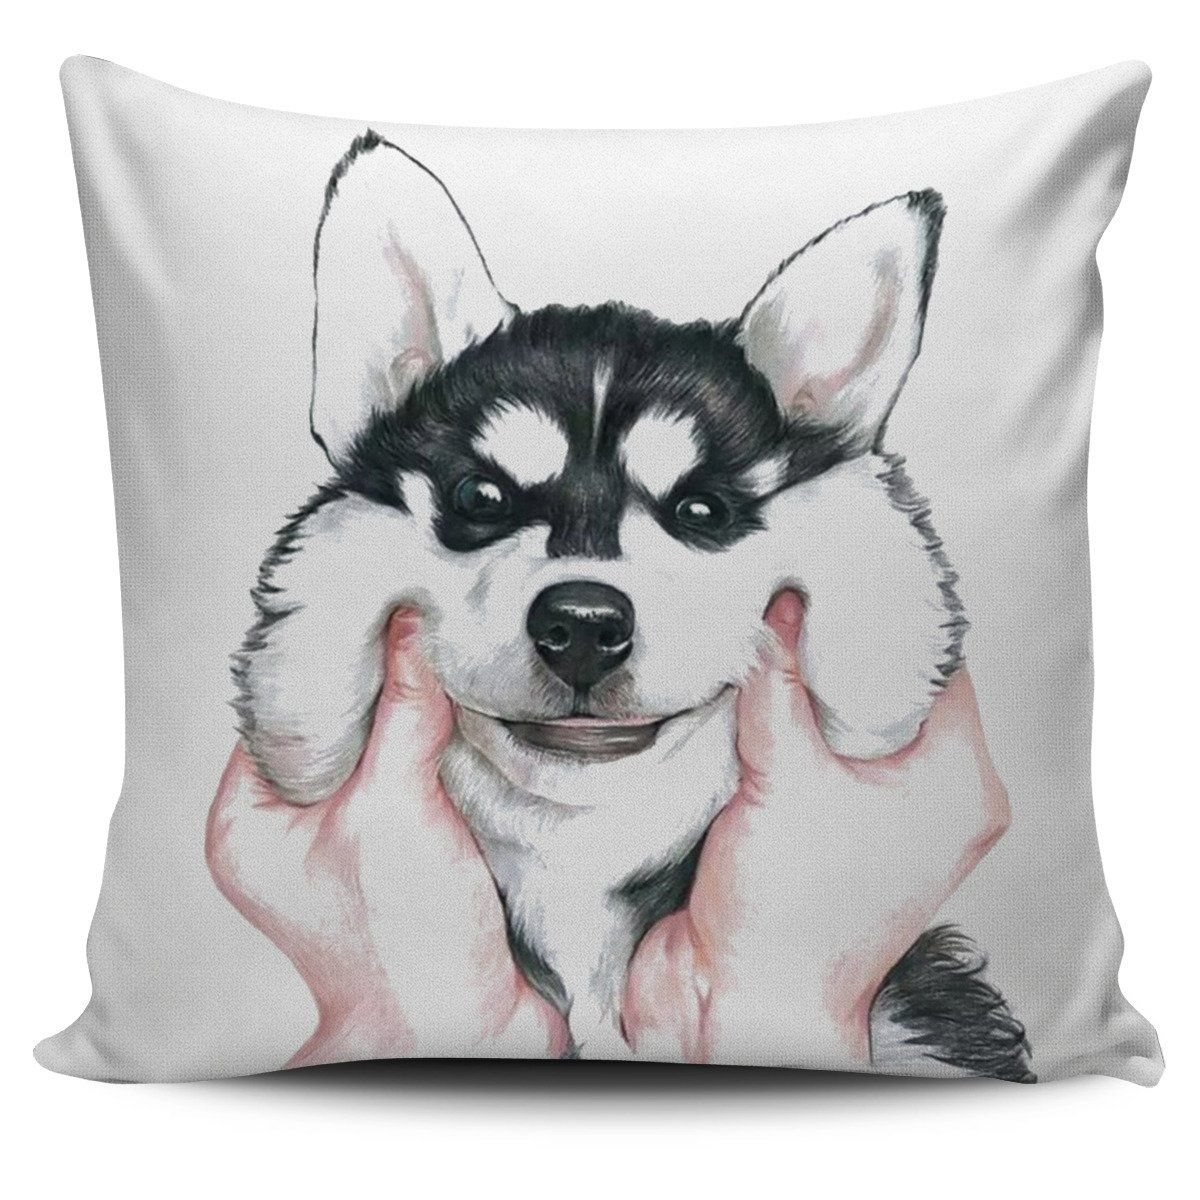 be1f3bf89eb1ed Husky Smoosh Cushion Cover | Products | Cushions, Pillow covers ...